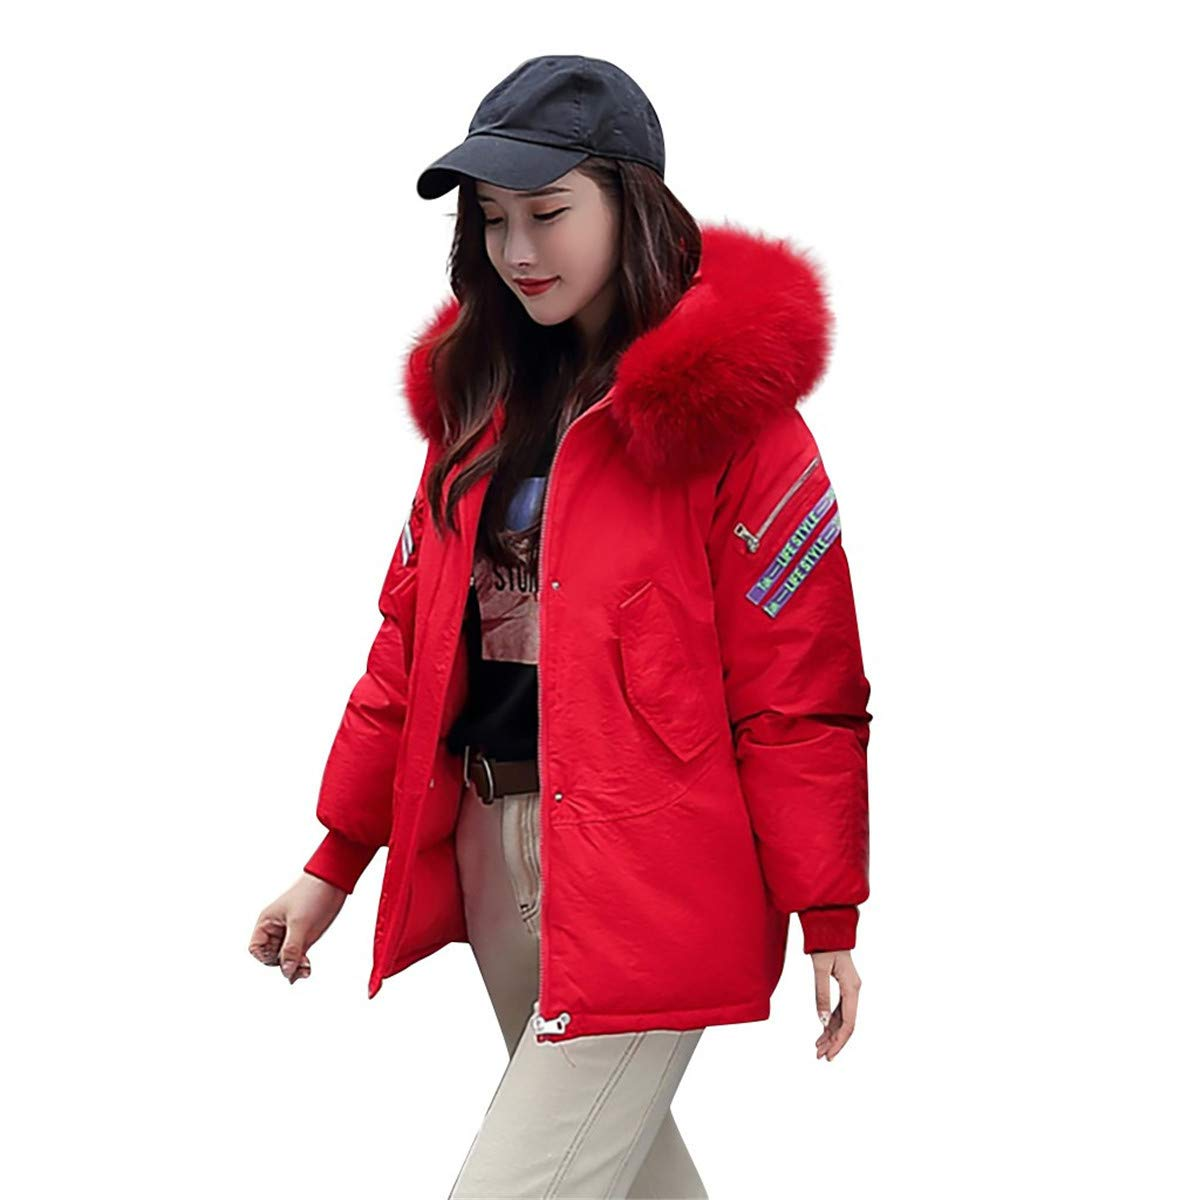 Thenxin Women's Winter Short Parka Jacket Fluzzy Faux Fur Hooded Thick Puffer Coats(Red,XL) by Thenxin